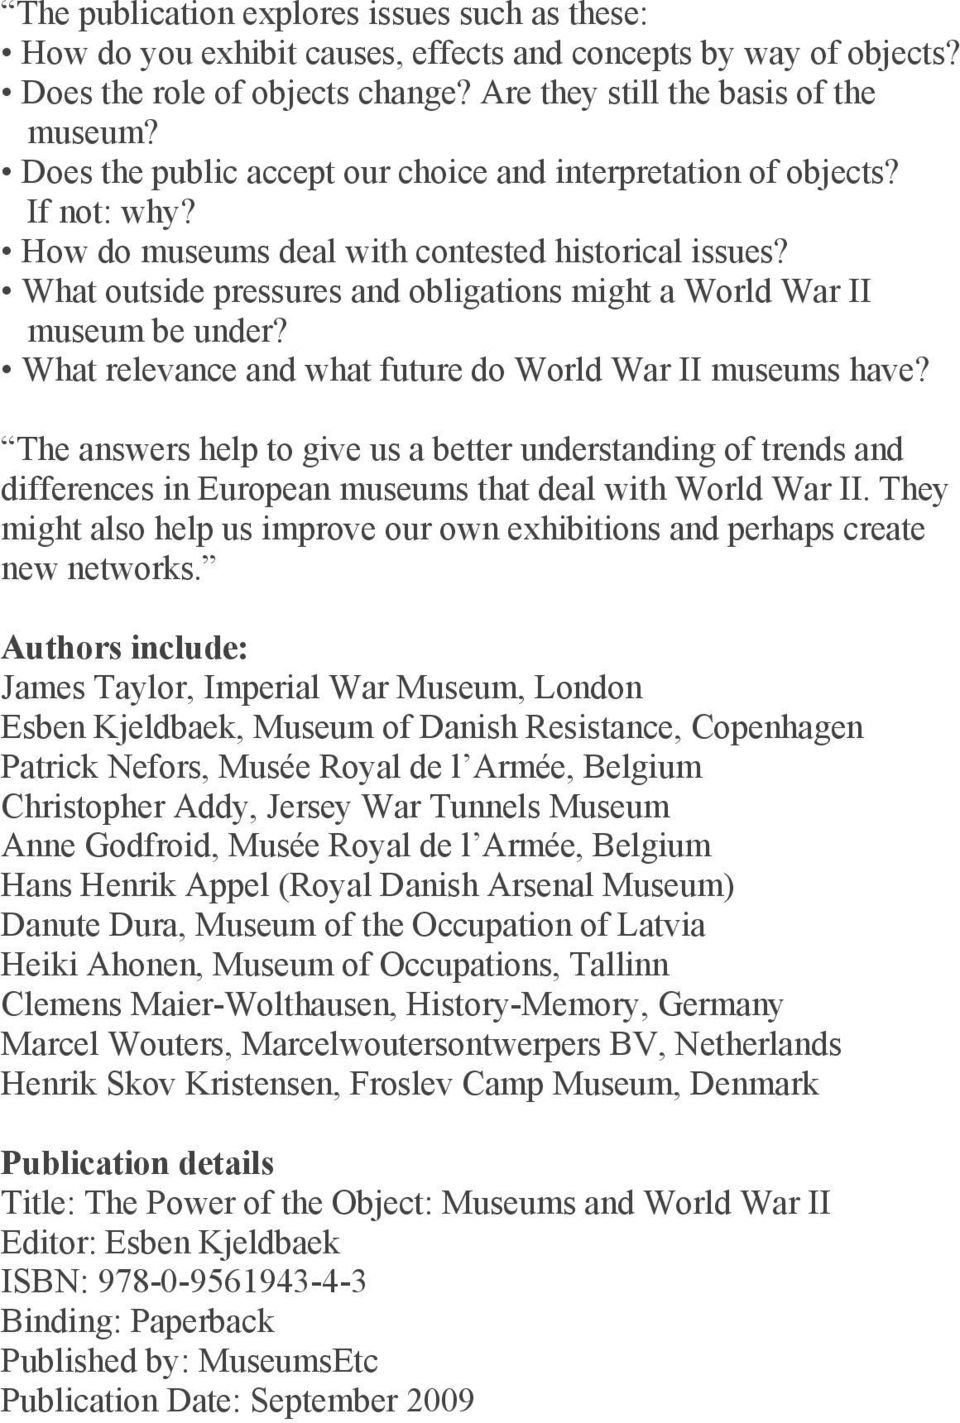 What outside pressures and obligations might a World War II museum be under? What relevance and what future do World War II museums have?